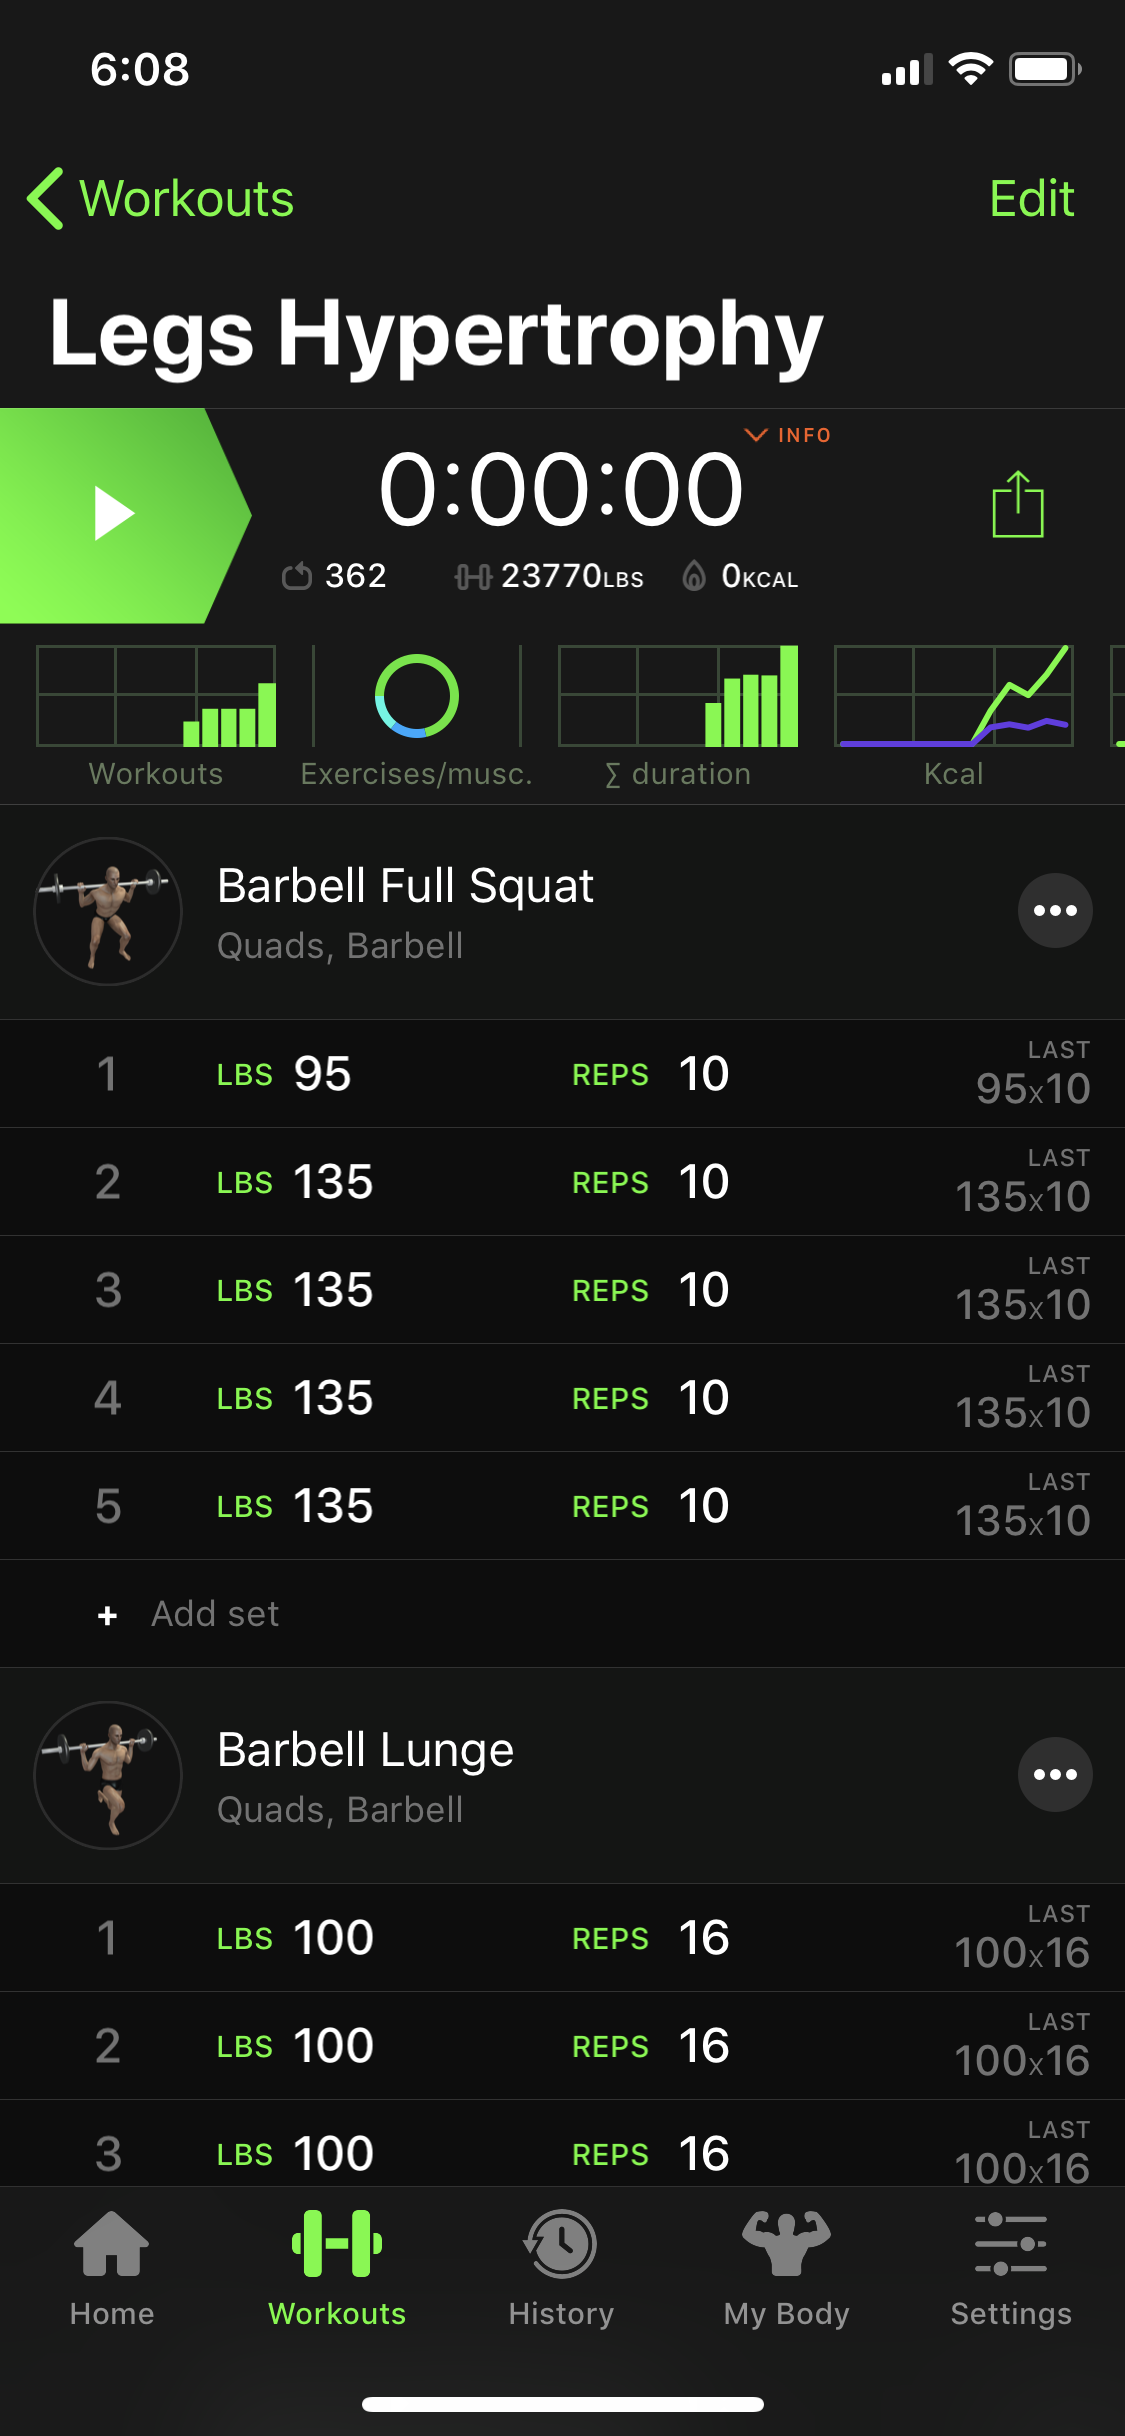 ONE: List of Workouts. TWO: Detailed Workout View. THREE: Detailed Exercise View.